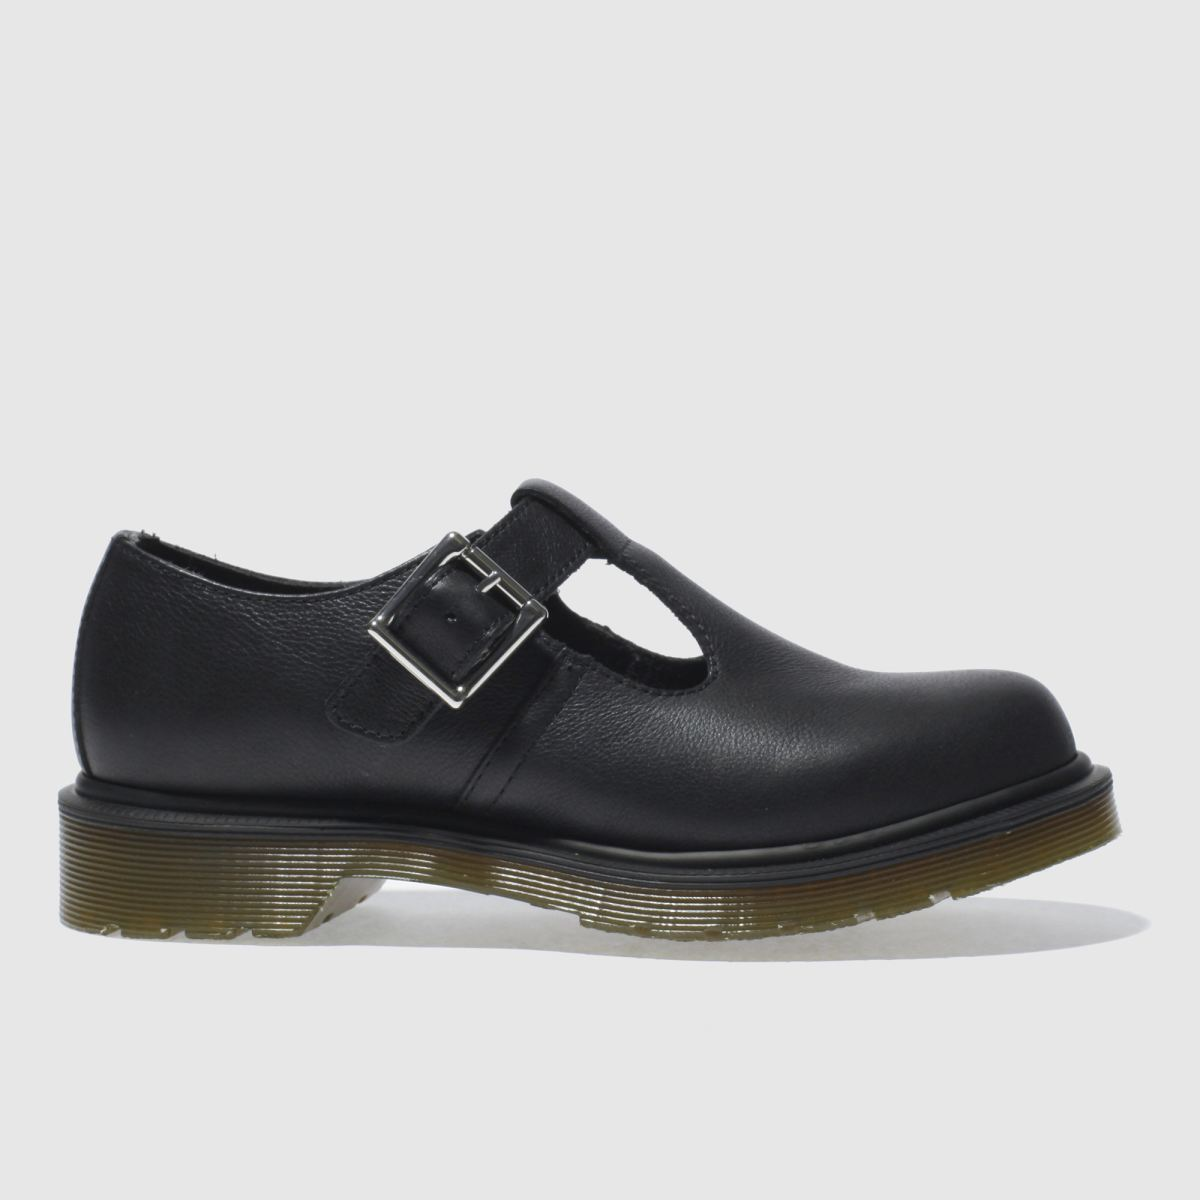 dr martens black polley t-bar flat shoes